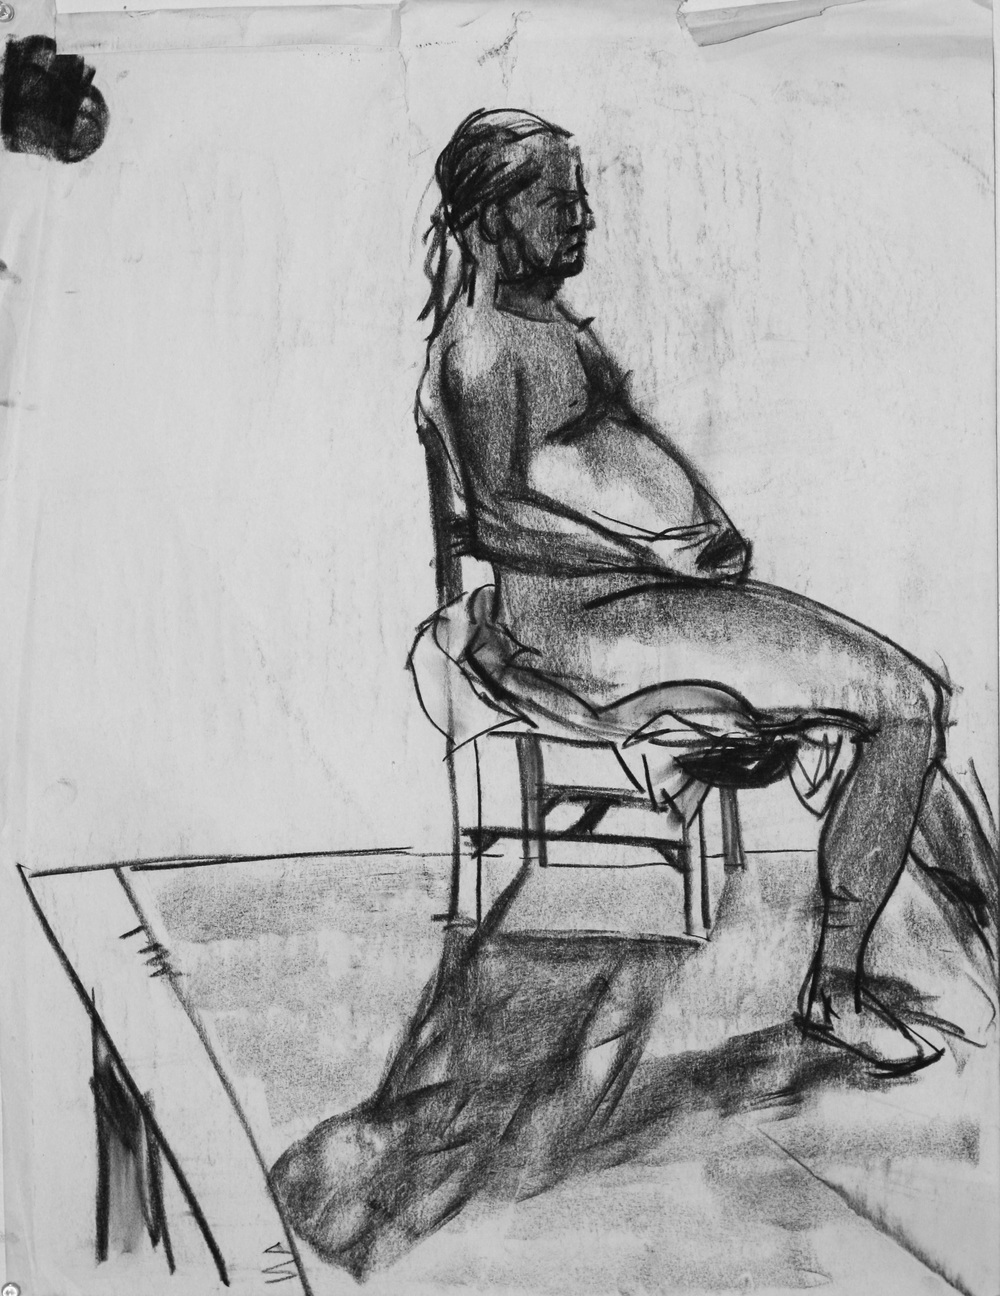 sittingfigure study2013.jpg